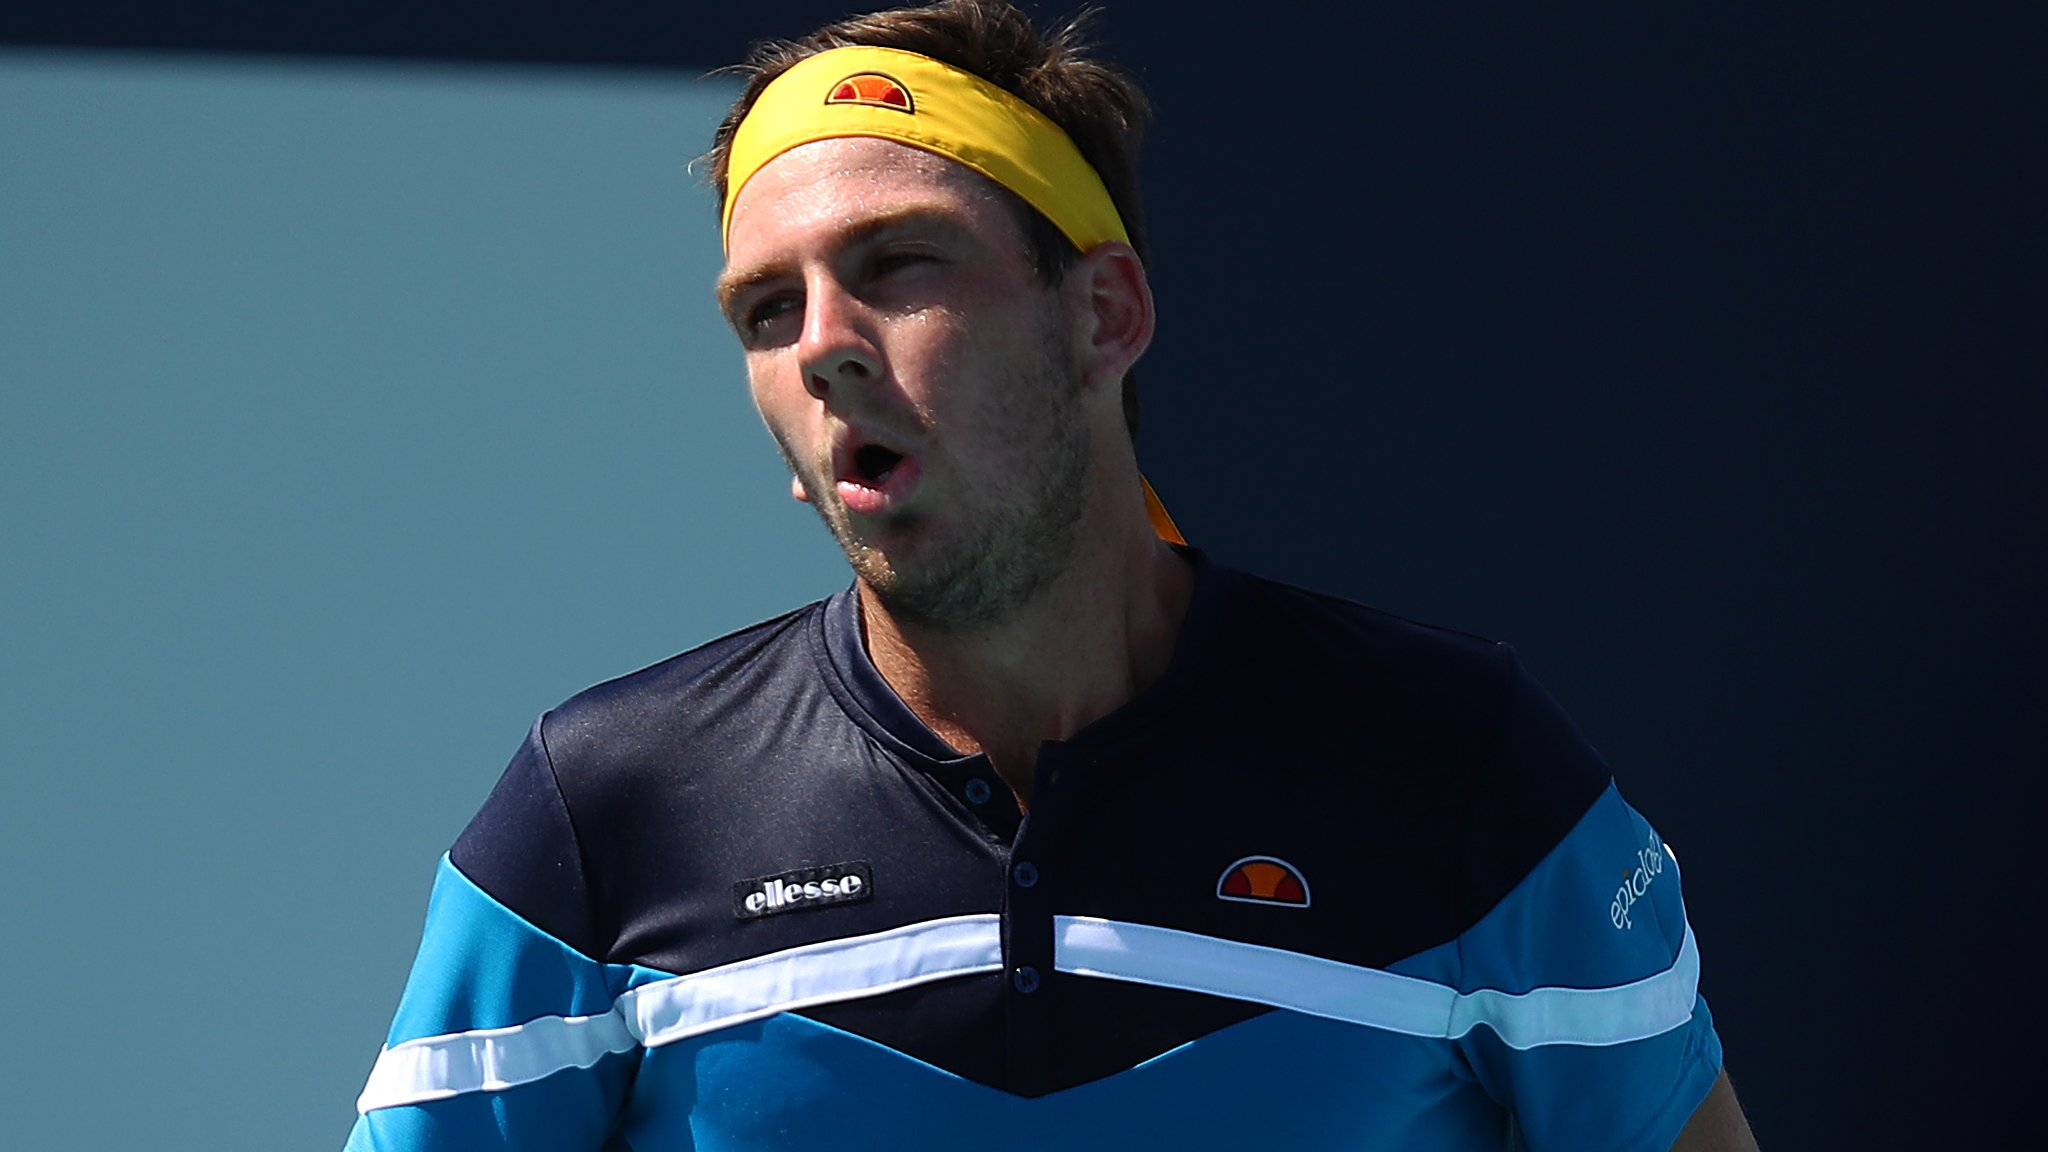 Norrie loses to world No 372 Tipsarevic in Houston